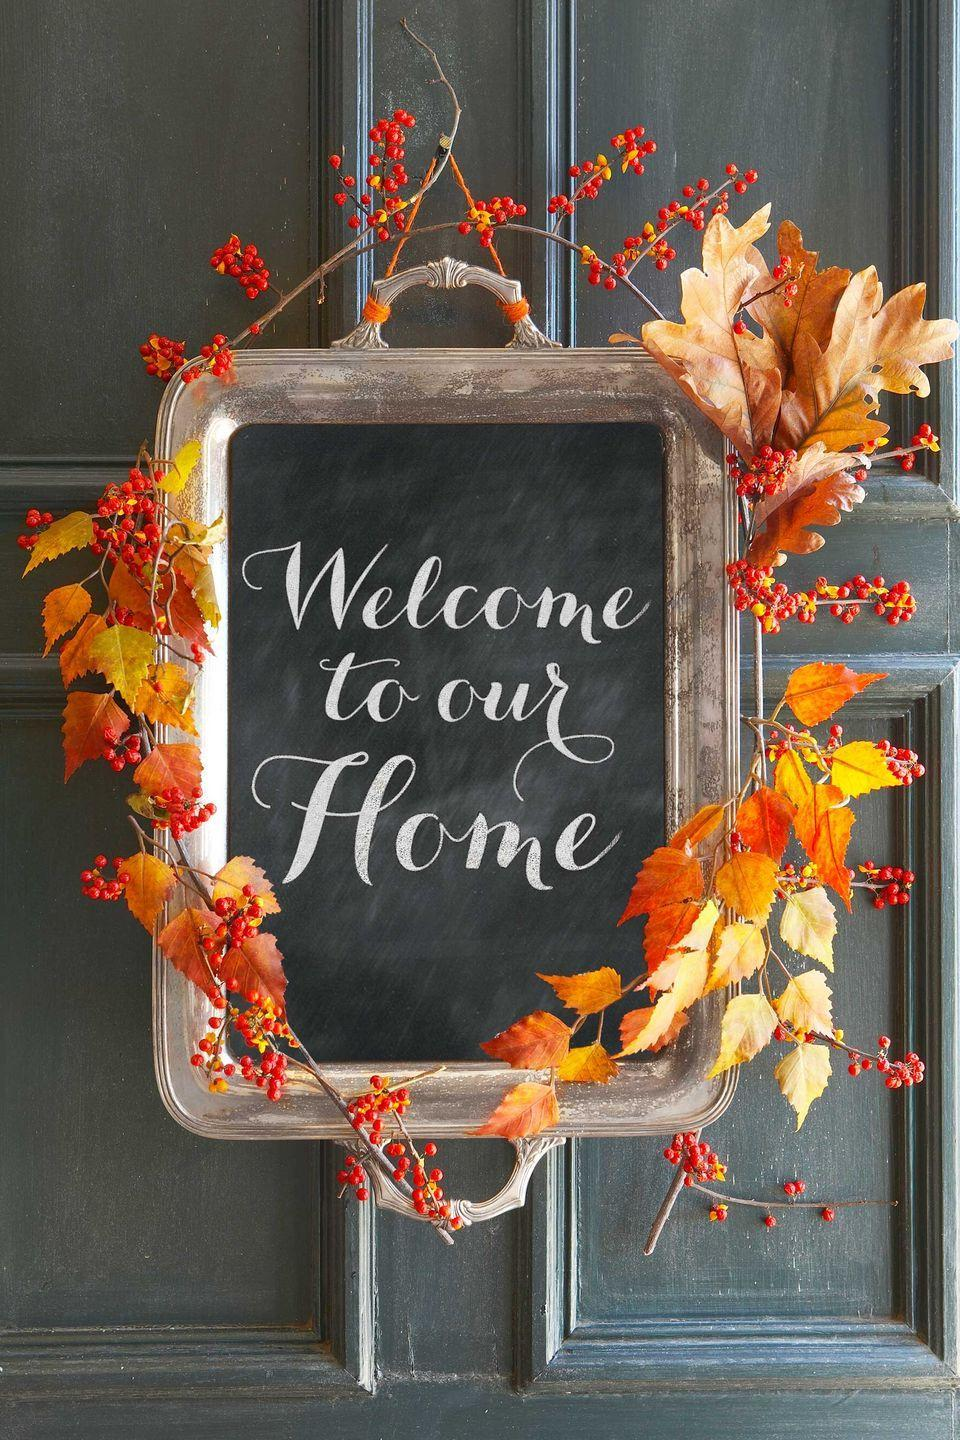 <p>Greet guests with this charming alternative to a fall wreath. Simply apply a layer of chalkboard paint to the inside of an old tray, then add autumn leaves and bittersweet berries for a seasonal finish. (Swap in evergreen and holly for the holidays!)</p>